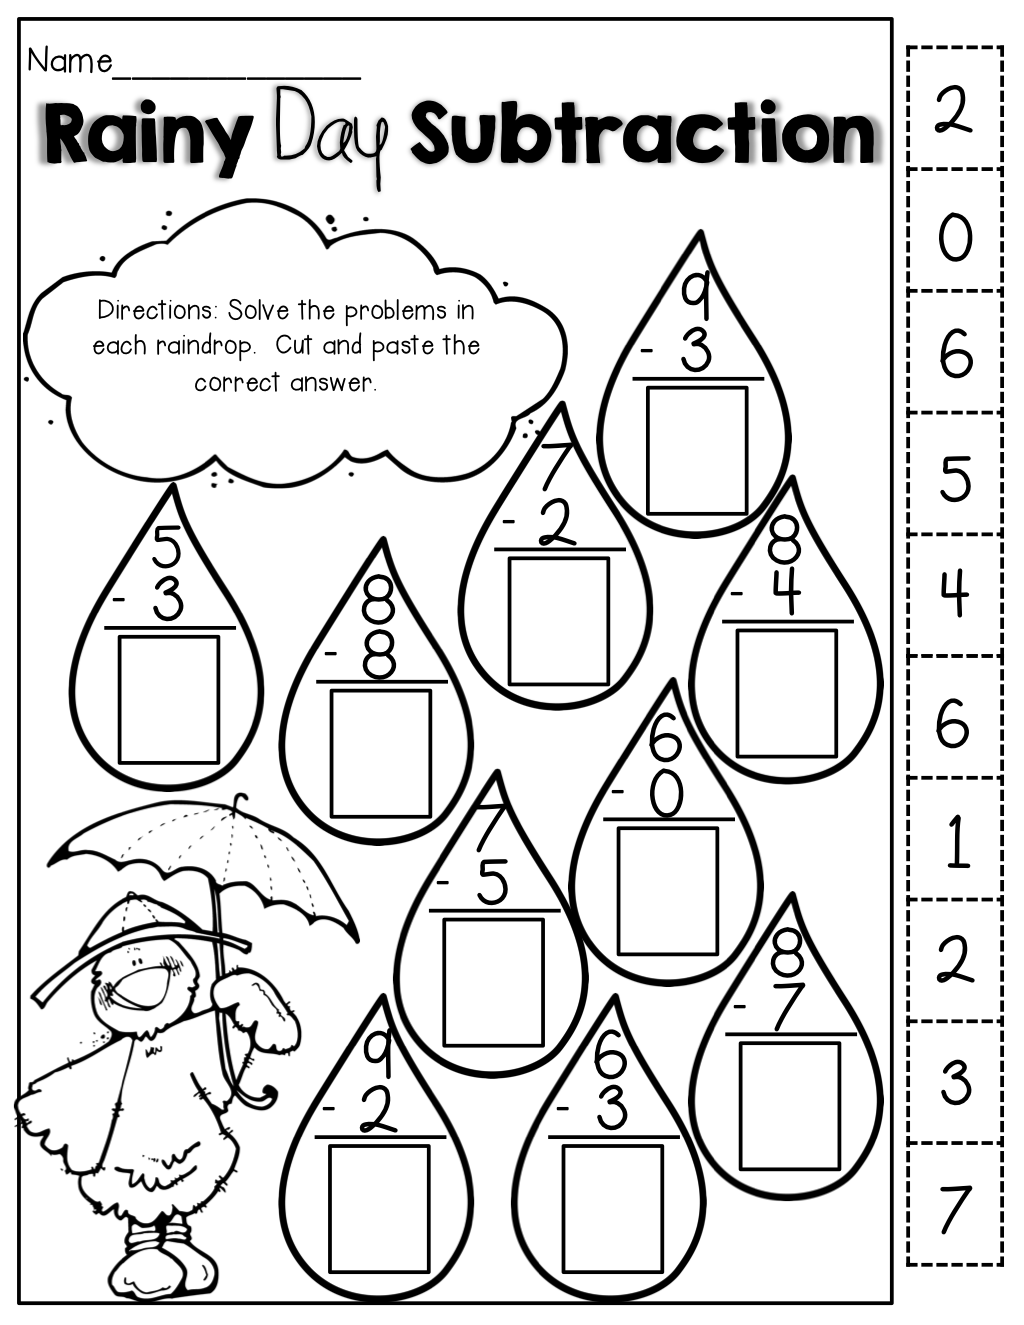 Rainy Day Subtraction – Cut and Paste Math Worksheets for First Grade